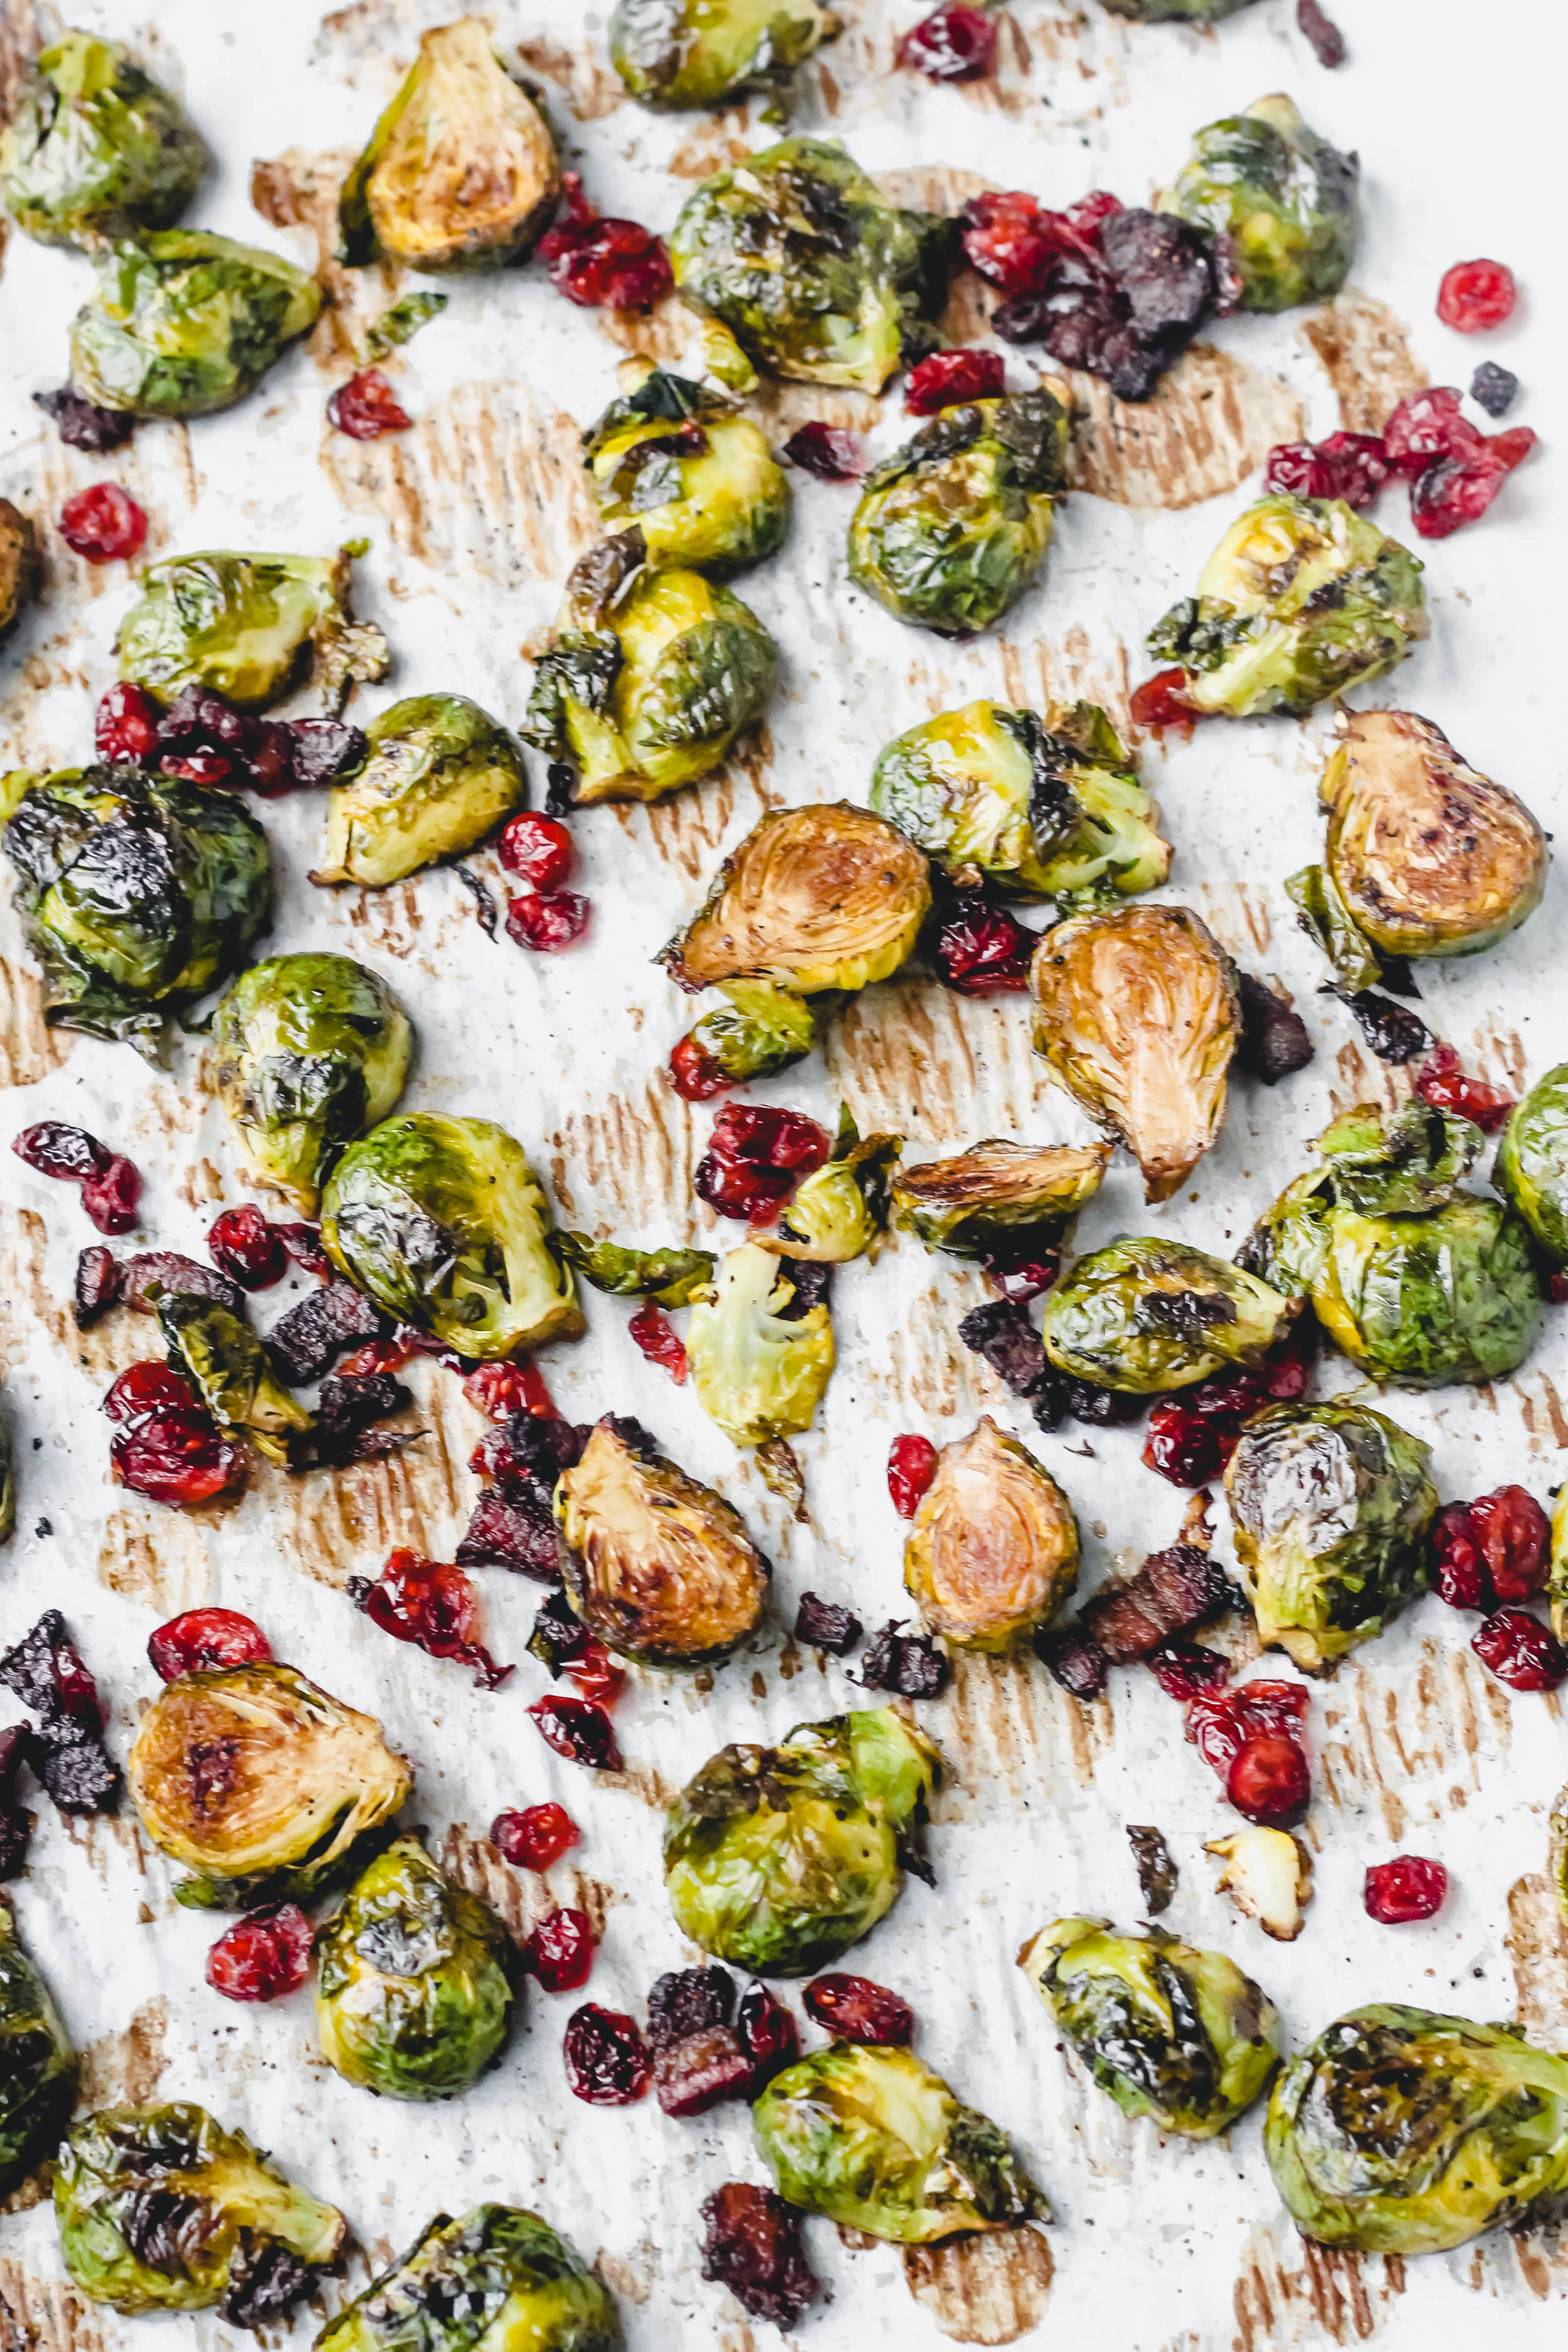 Roasted Brussel Sprouts with Cranberries, Bacon, and Balsamic